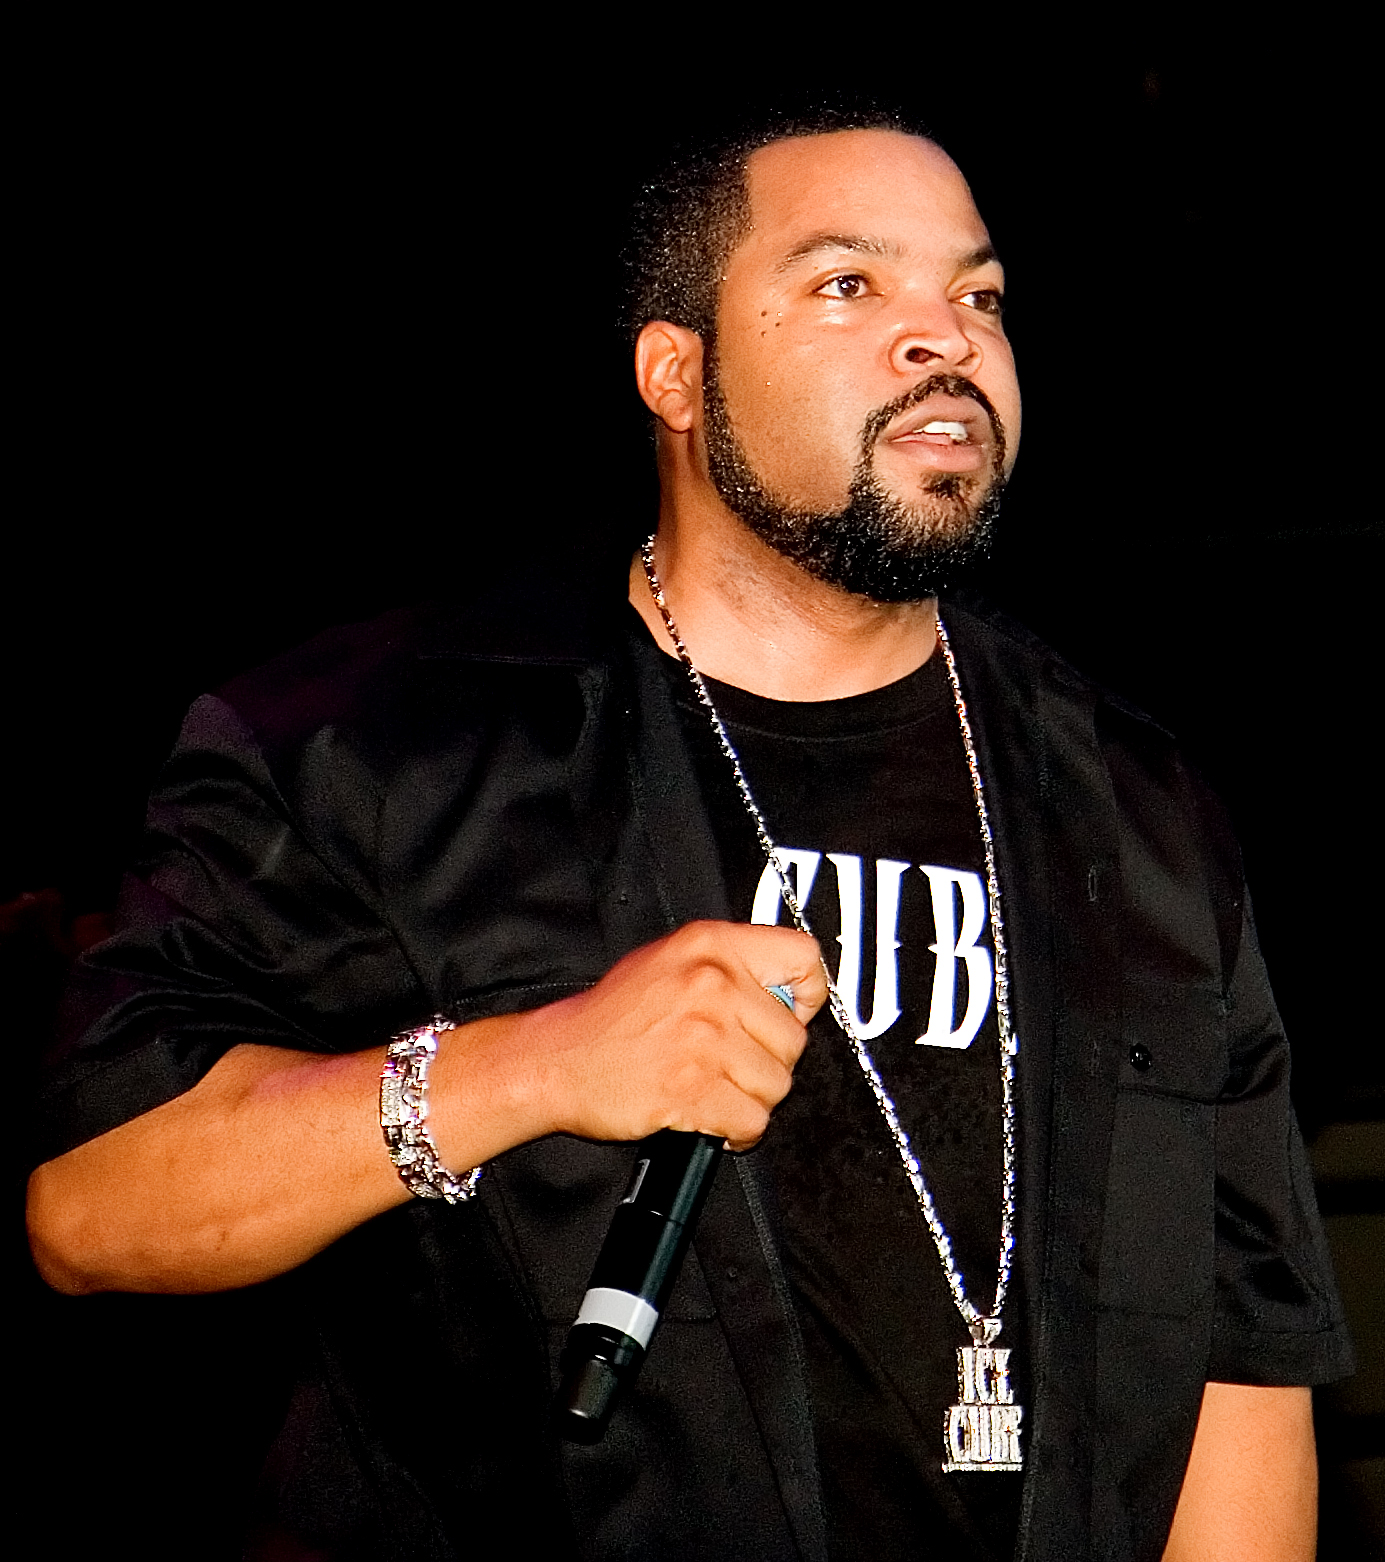 Ice Cube performing in Toronto, Canada